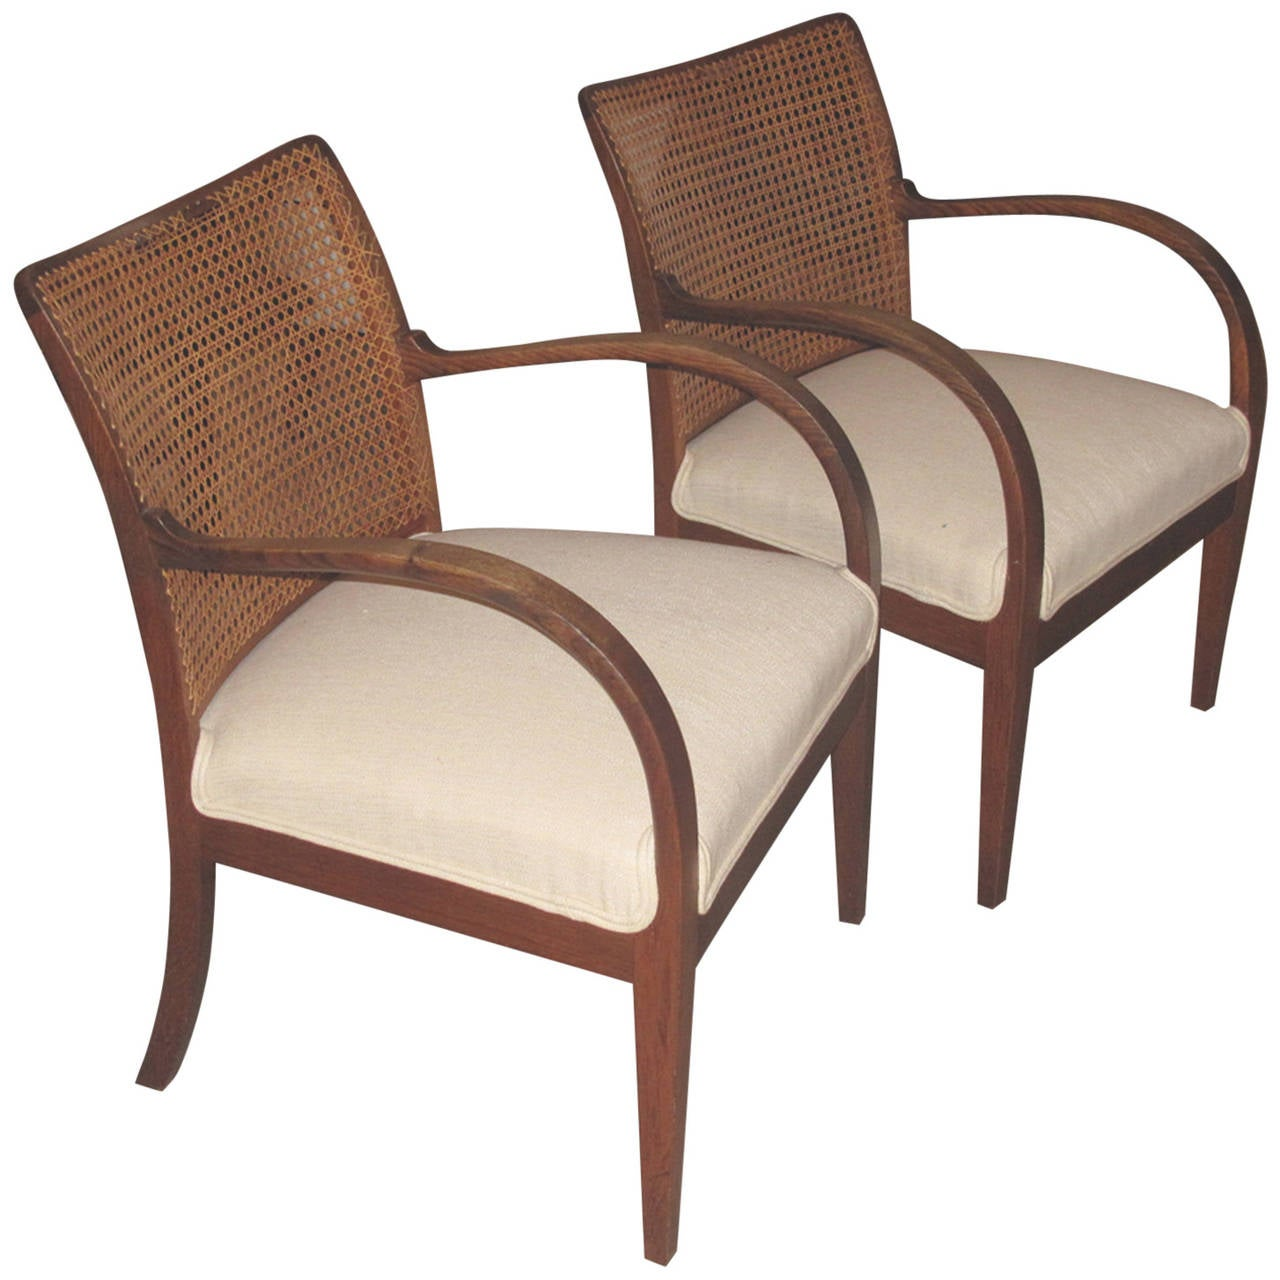 Pair of Danish Caned Back Armchairs in the Manner of Frits Henningsen